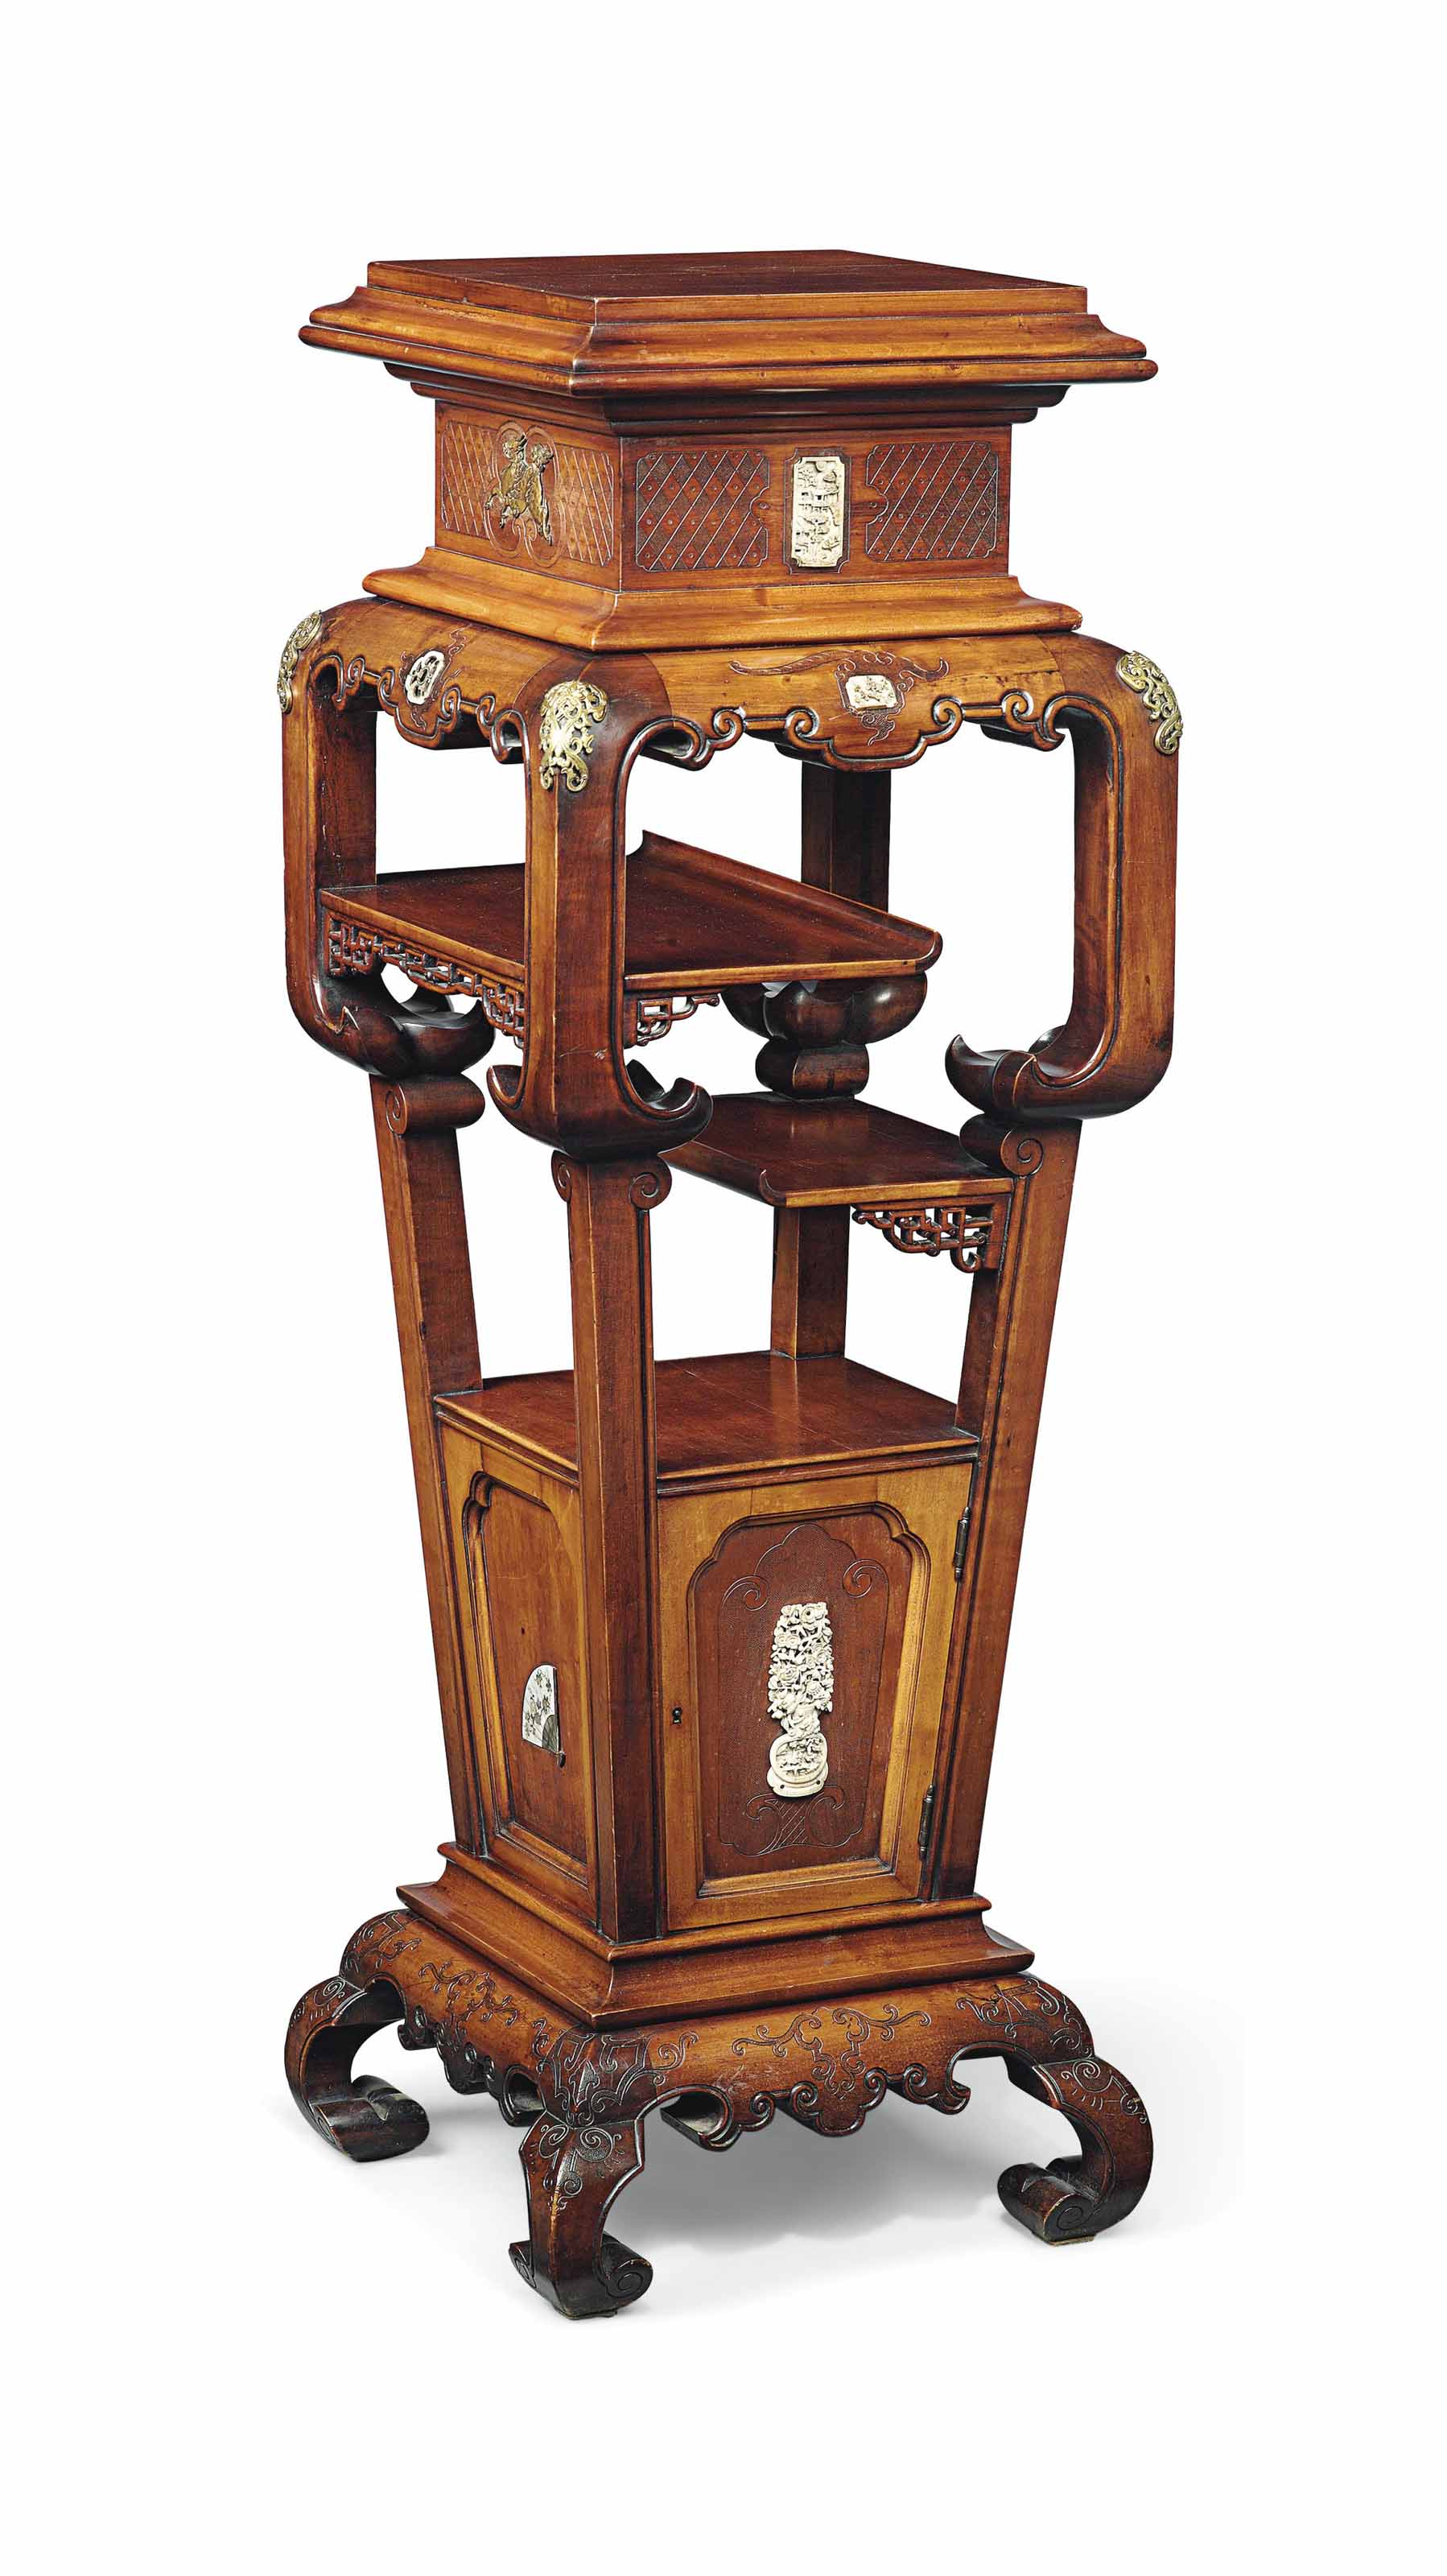 A FRENCH 'JAPONISME' ORMOLU- AND IVORY-MOUNTED FRUITWOOD STAND